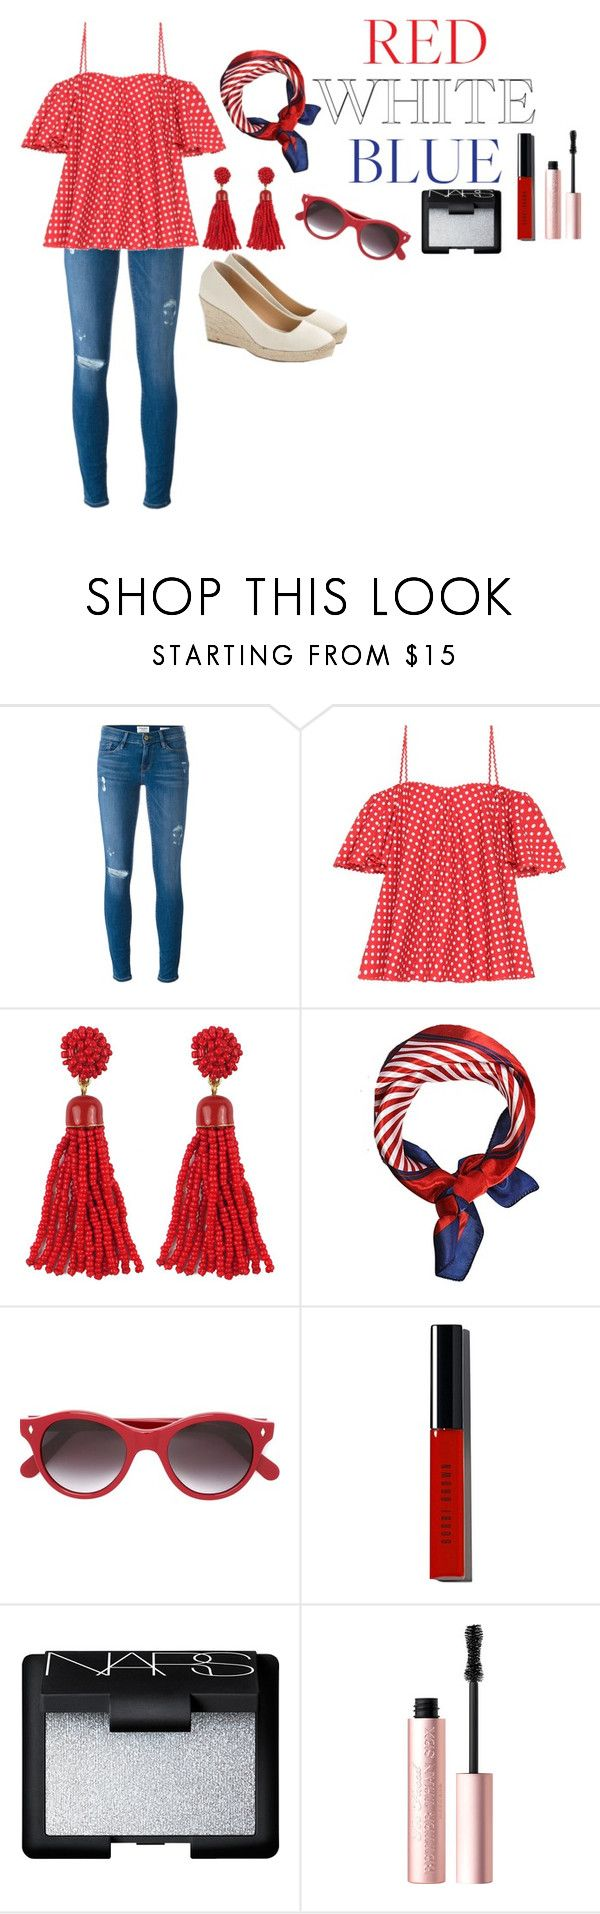 """""""Red white and blue"""" by tcolasante on Polyvore featuring Frame, Anna October, Cutler and Gross, Bobbi Brown Cosmetics, NARS Cosmetics, Too Faced Cosmetics and J.Crew"""